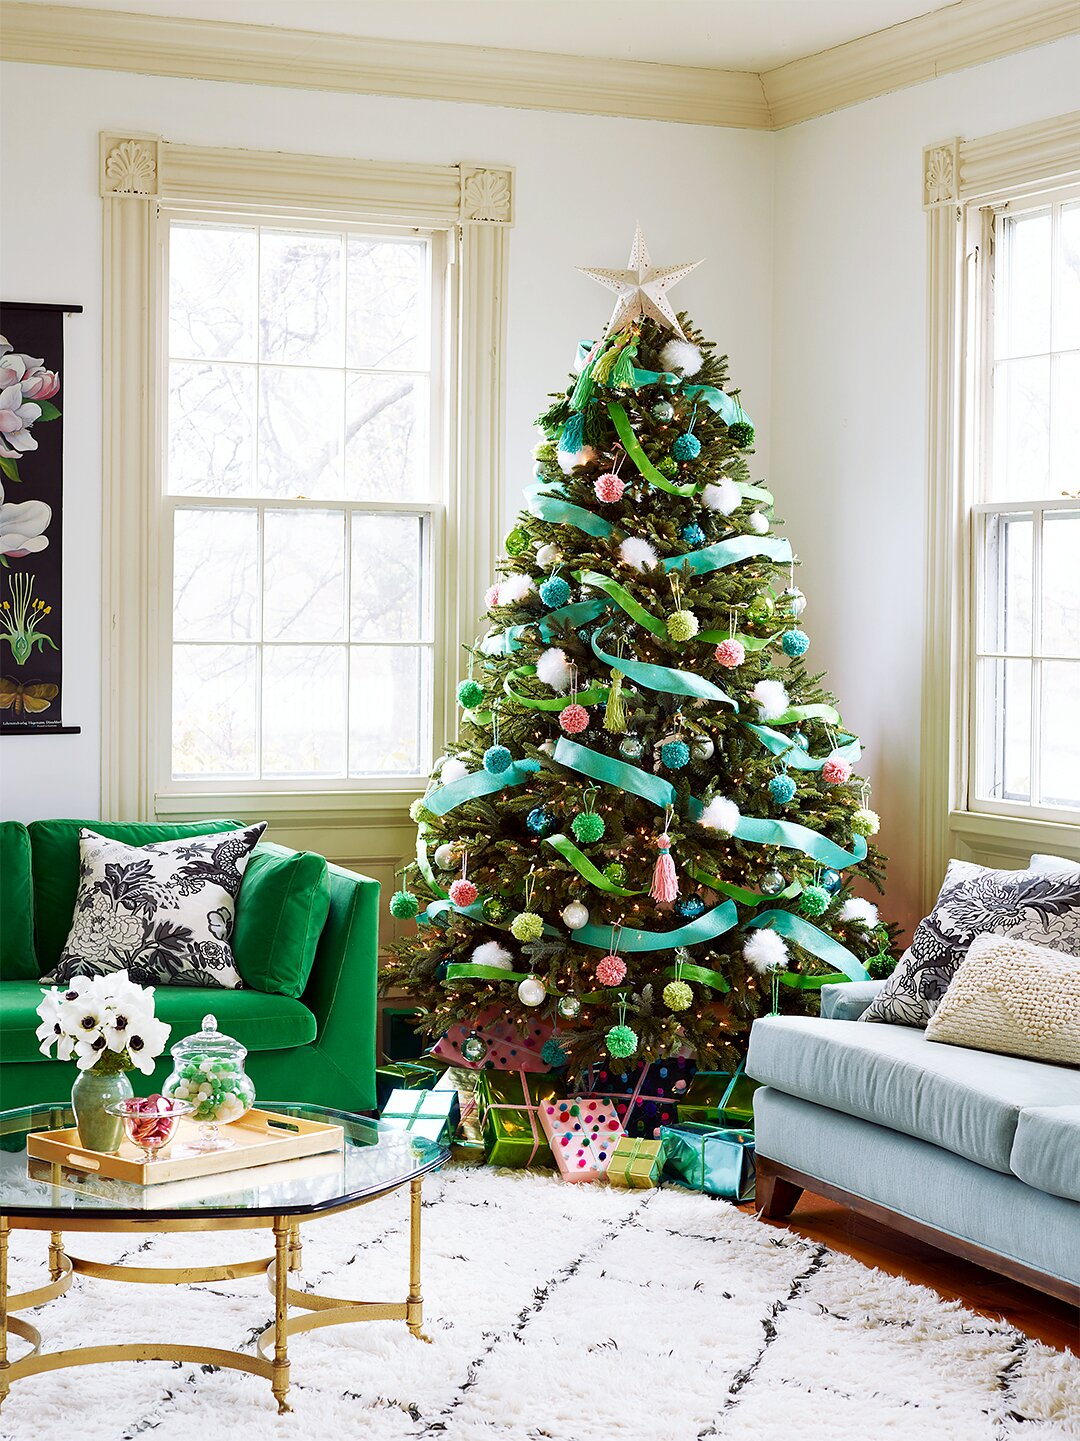 Christmas Tree Recycle Design.Recycle Your Christmas Tree Better Homes Gardens